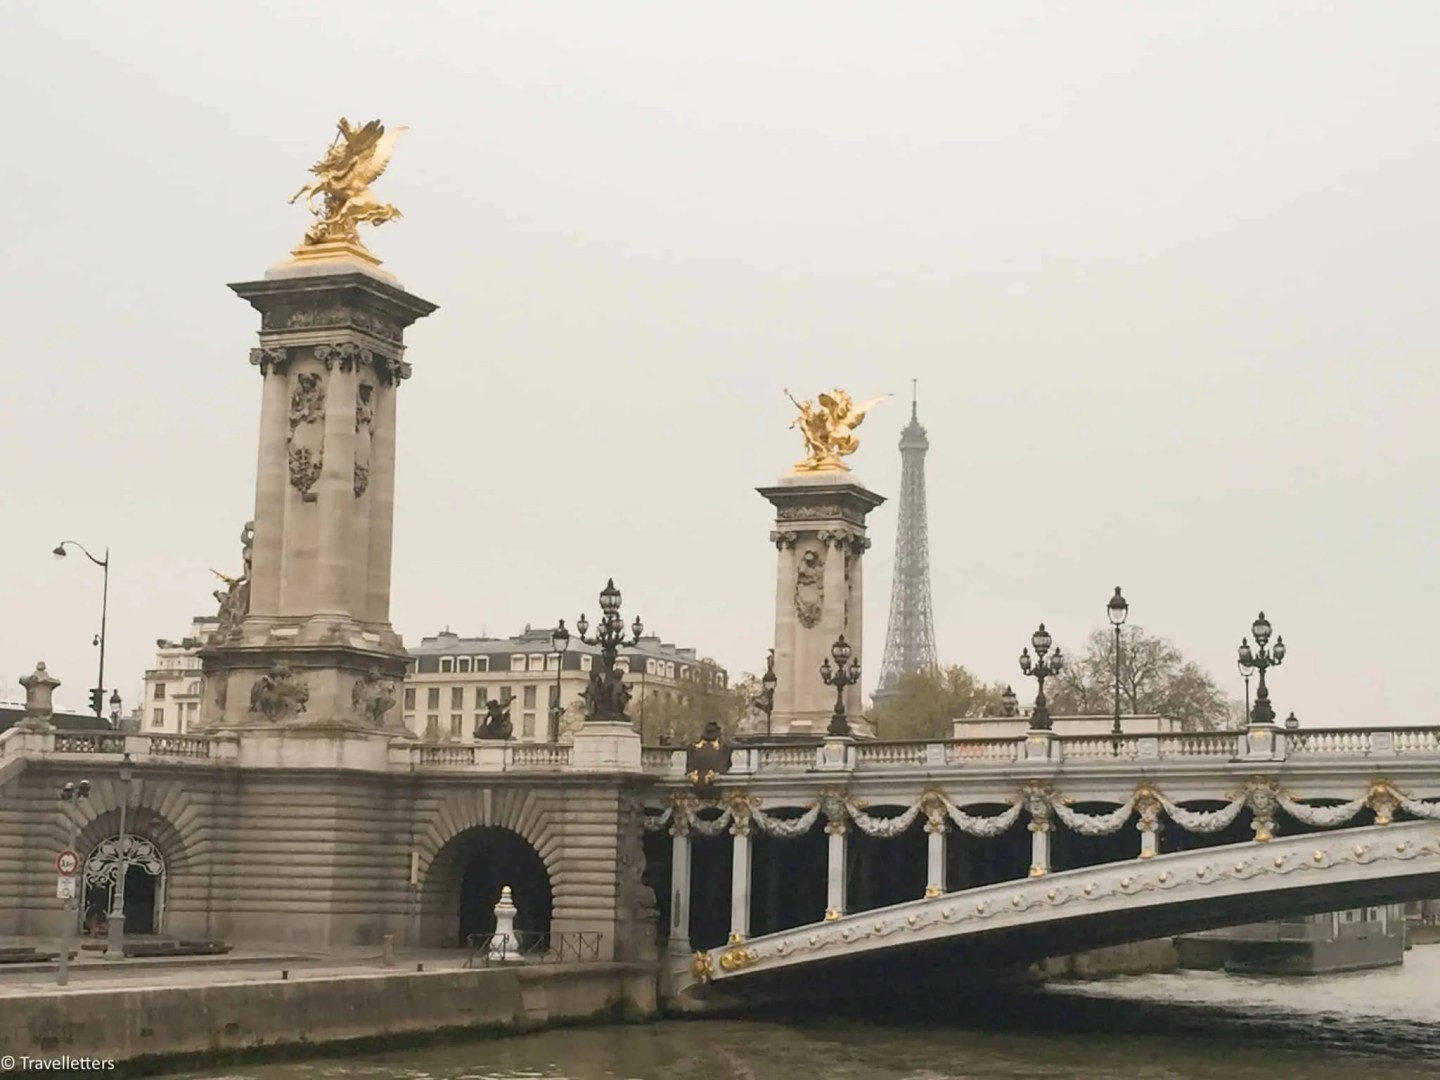 best time to visit paris, where to stay in paris, main tourist attractions in Paris, Pont AlexandreIII, top 10 tourist attractions in Paris, cruise on Seine